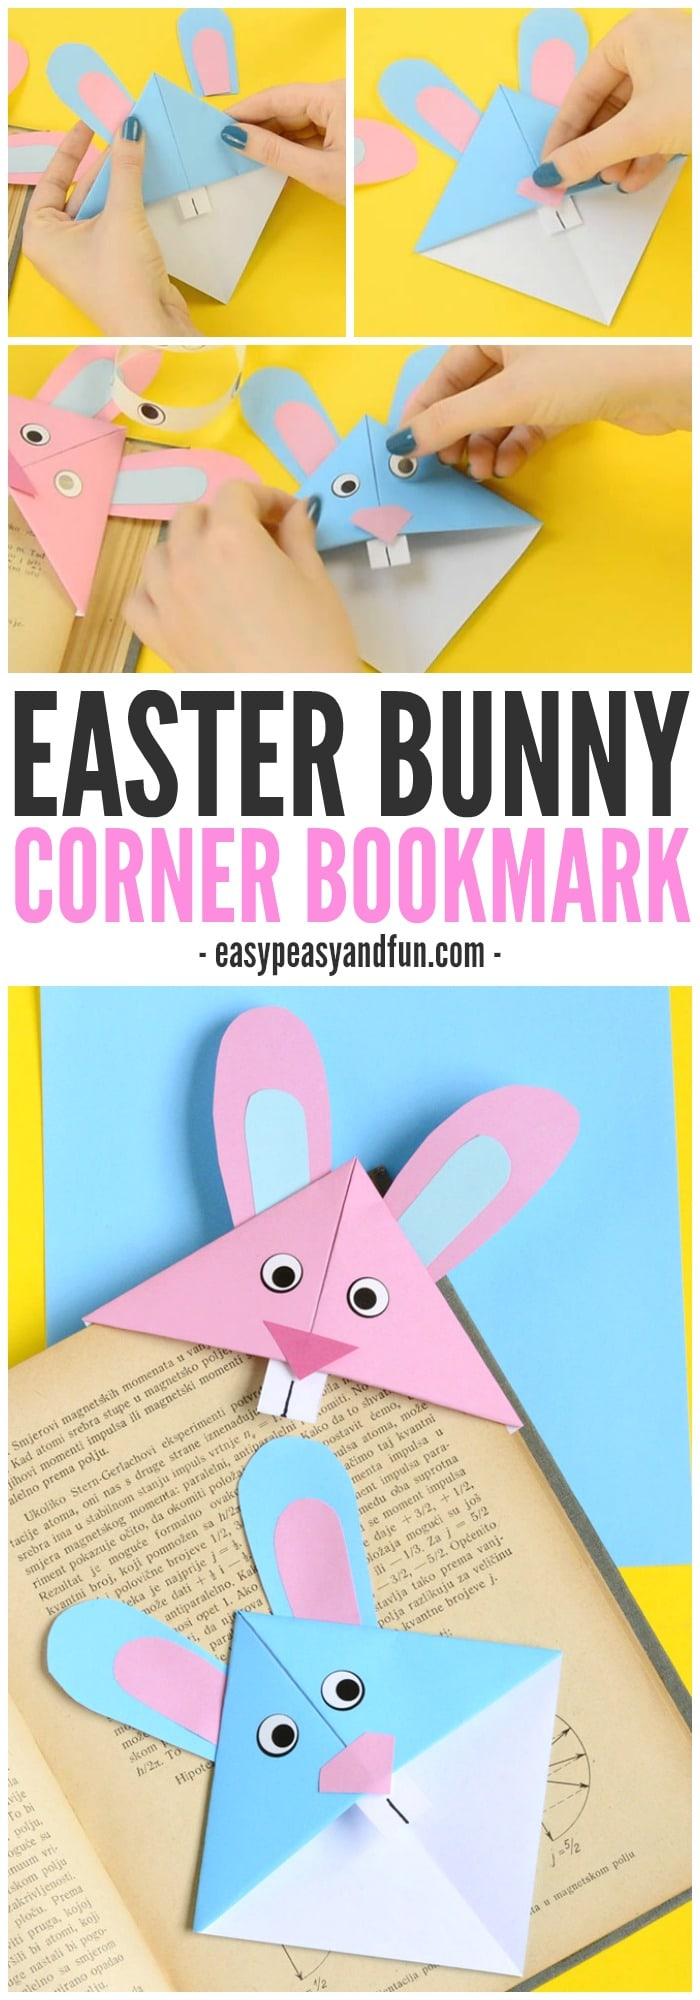 easter bunny corner bookmark easter bunny corner bookmark diy origami for easy 4298